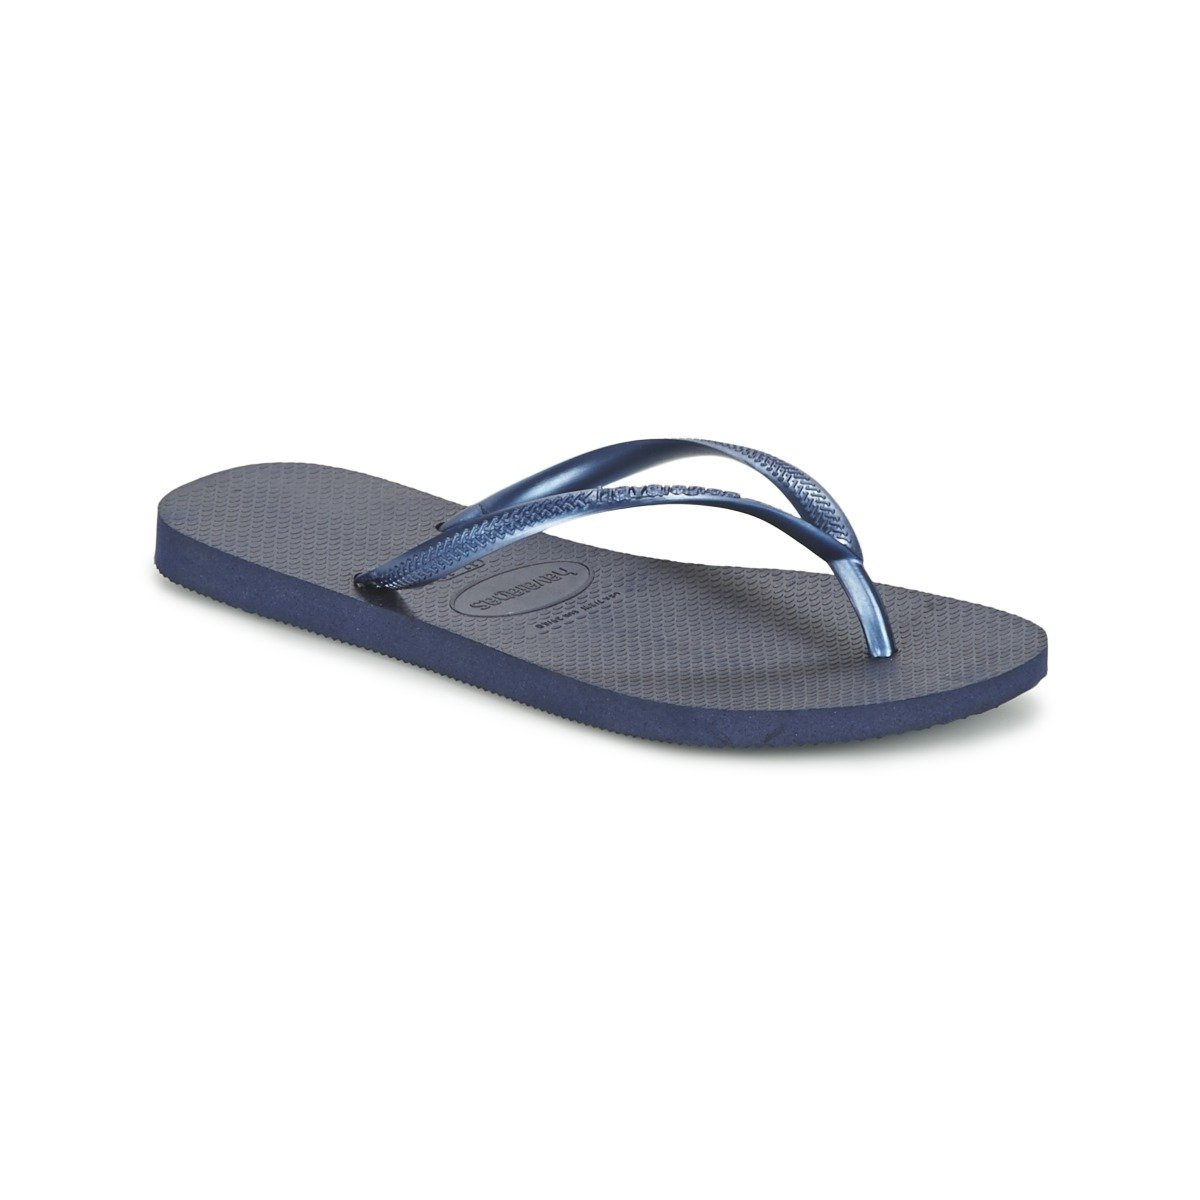 095a3159f0928d Havaianas Slim Womens Flip Flops - Navy Blue  Amazon.co.uk  Shoes   Bags